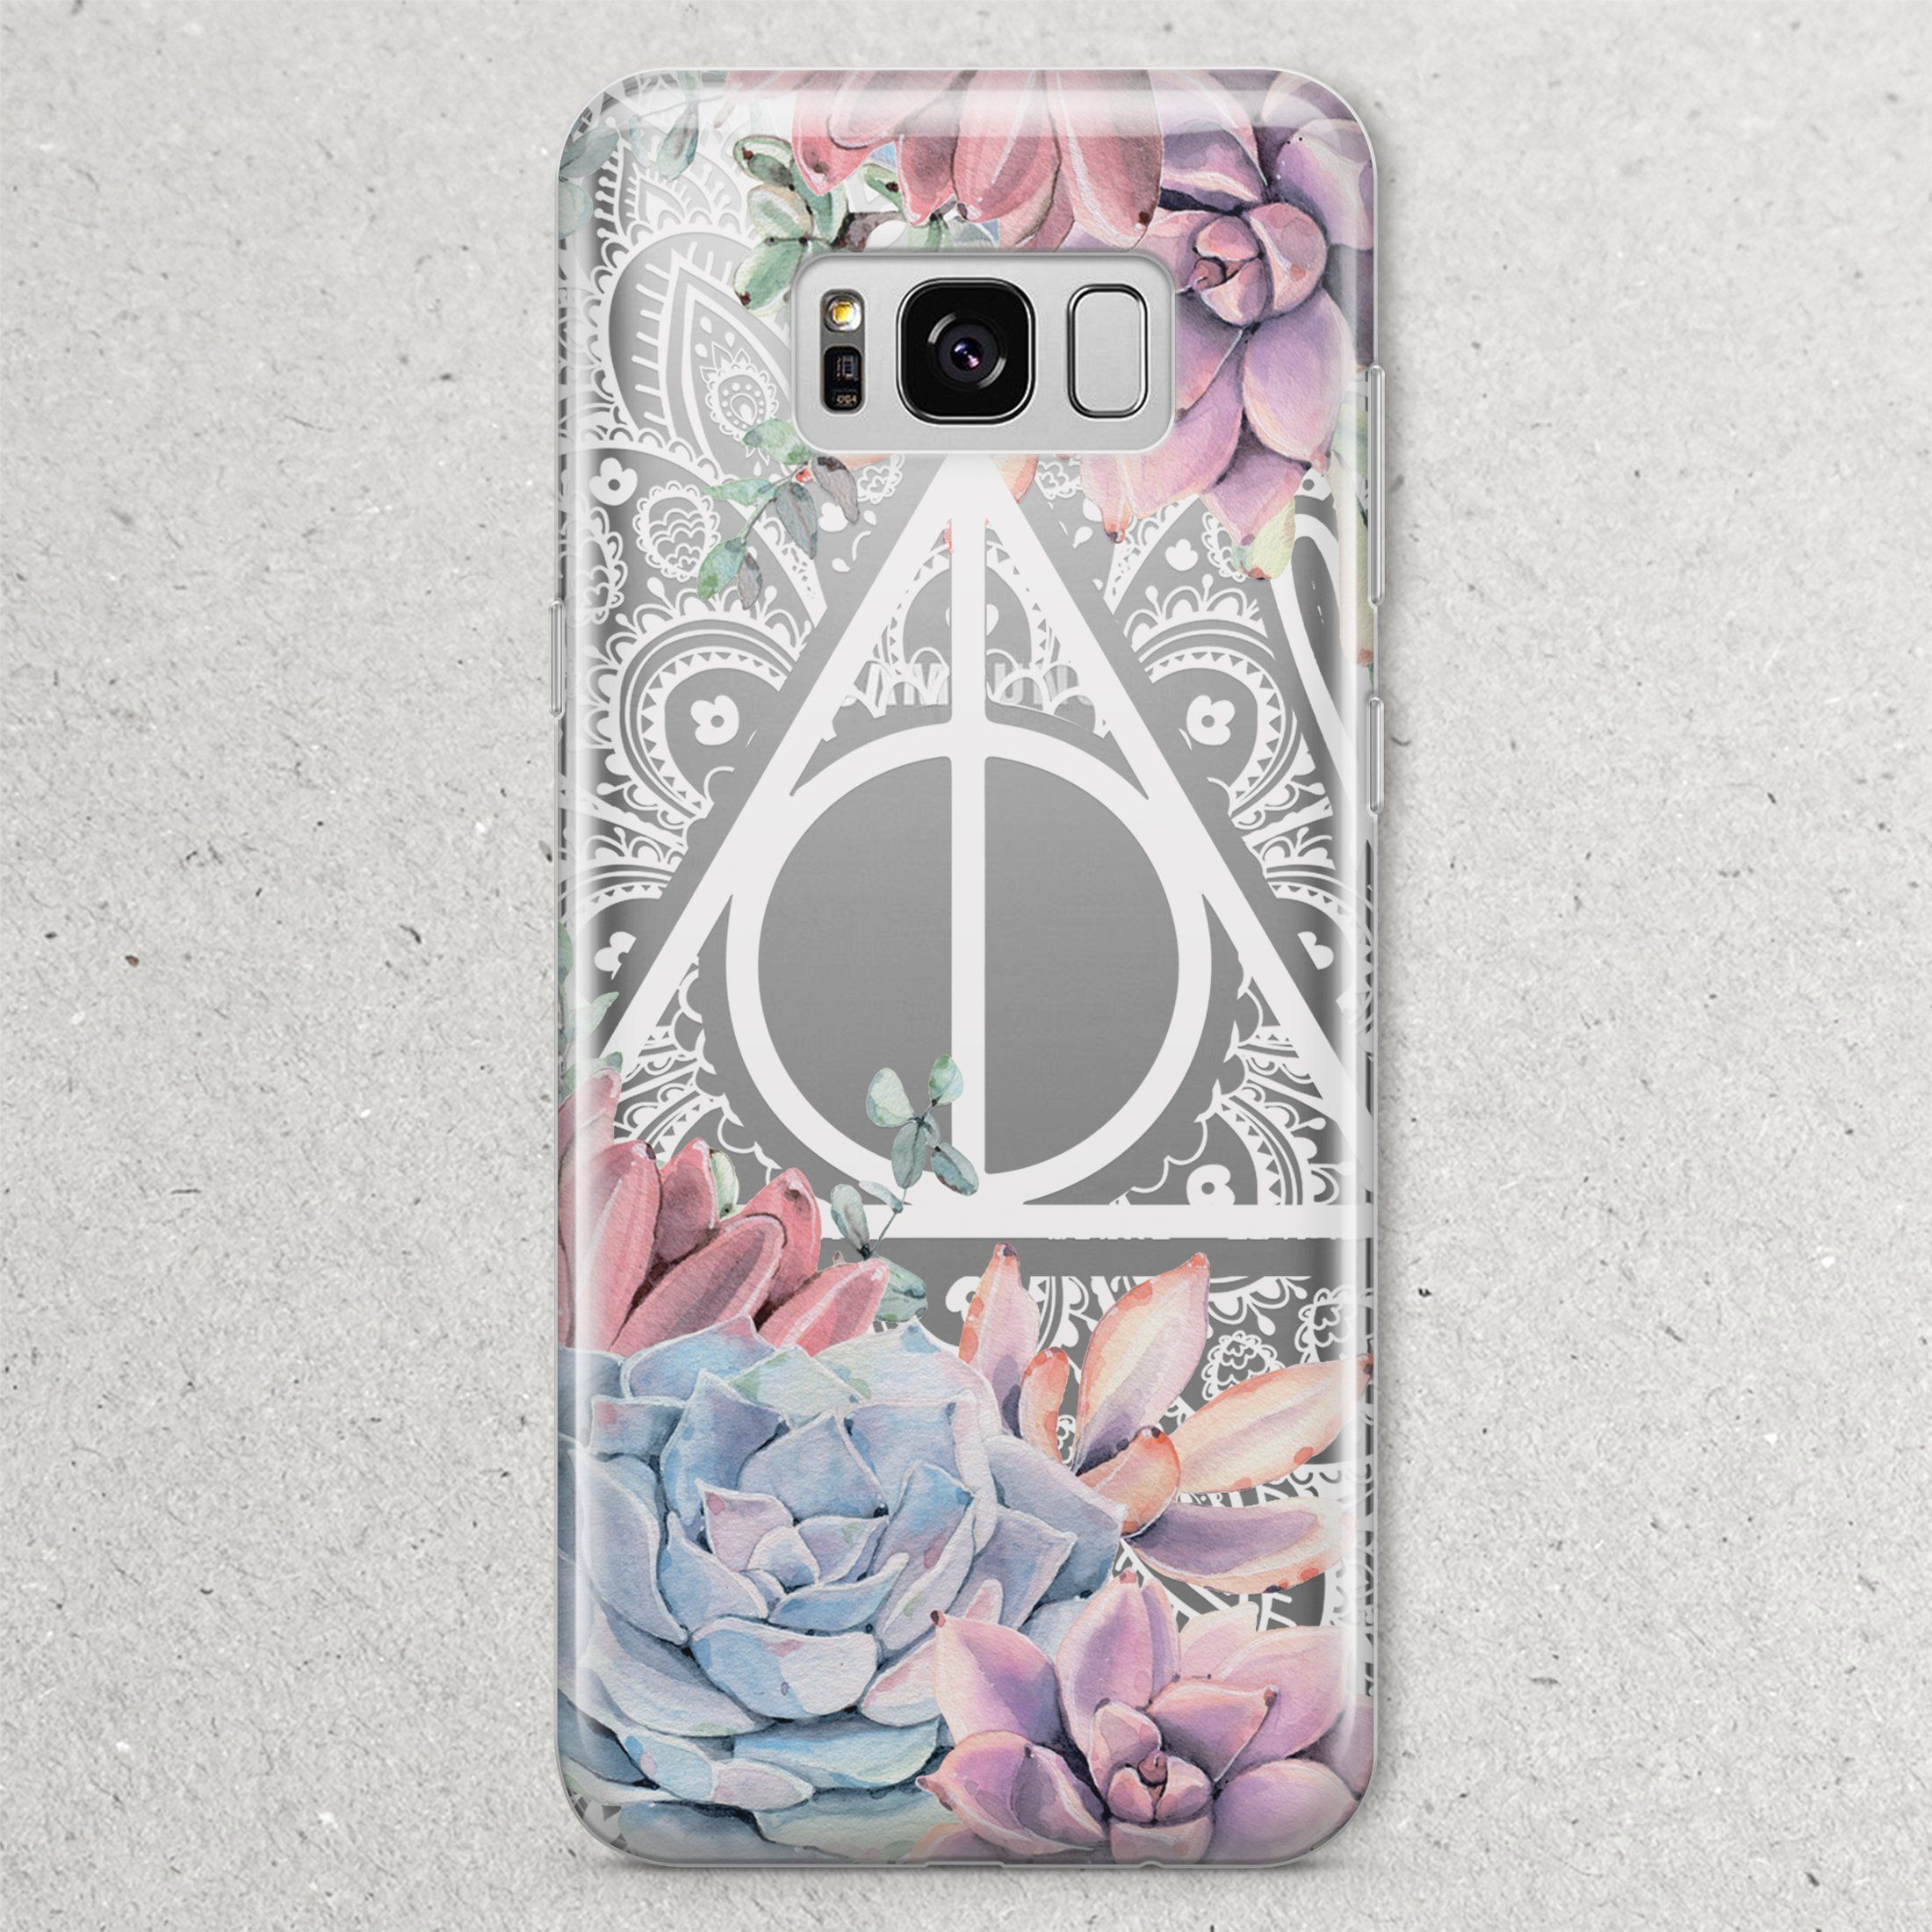 huge discount 866dc 028c6 Harry Potter Samsung Galaxy S9 plus Case Note 8 S8 Plus for Samsung ...